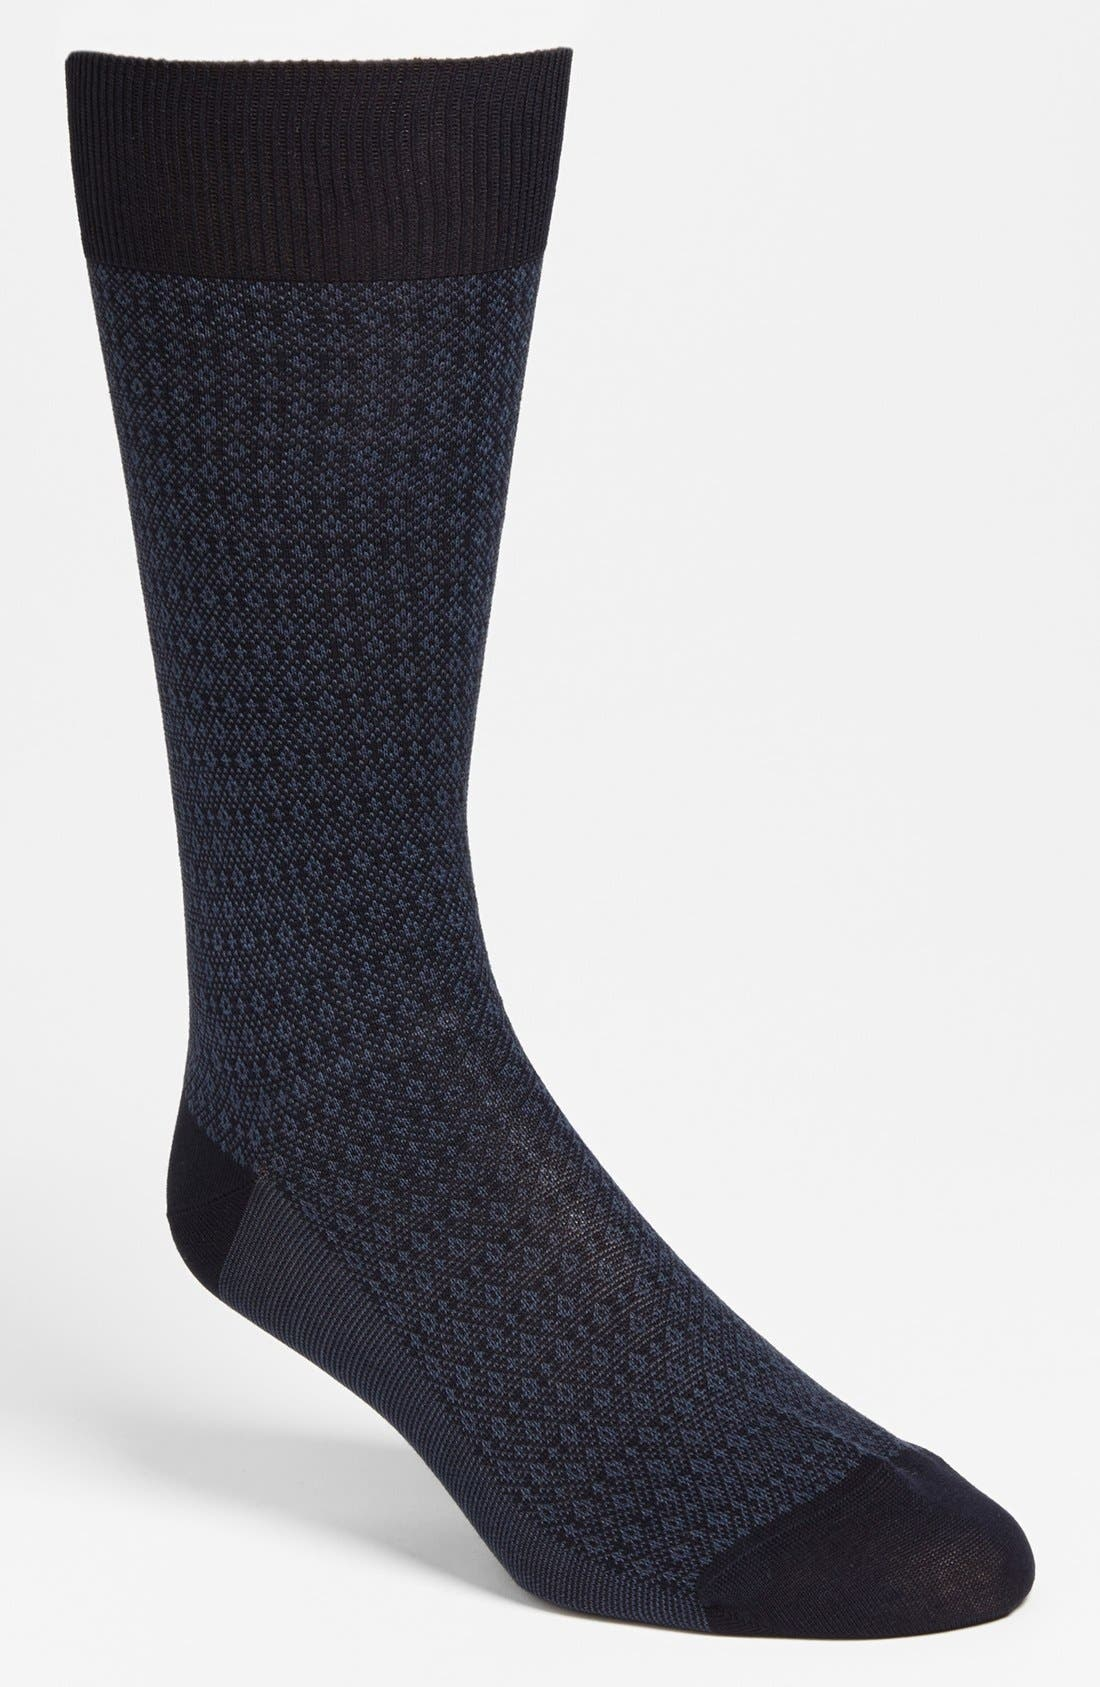 Alternate Image 1 Selected - Pantherella 'Fenchurch' Birdseye Socks